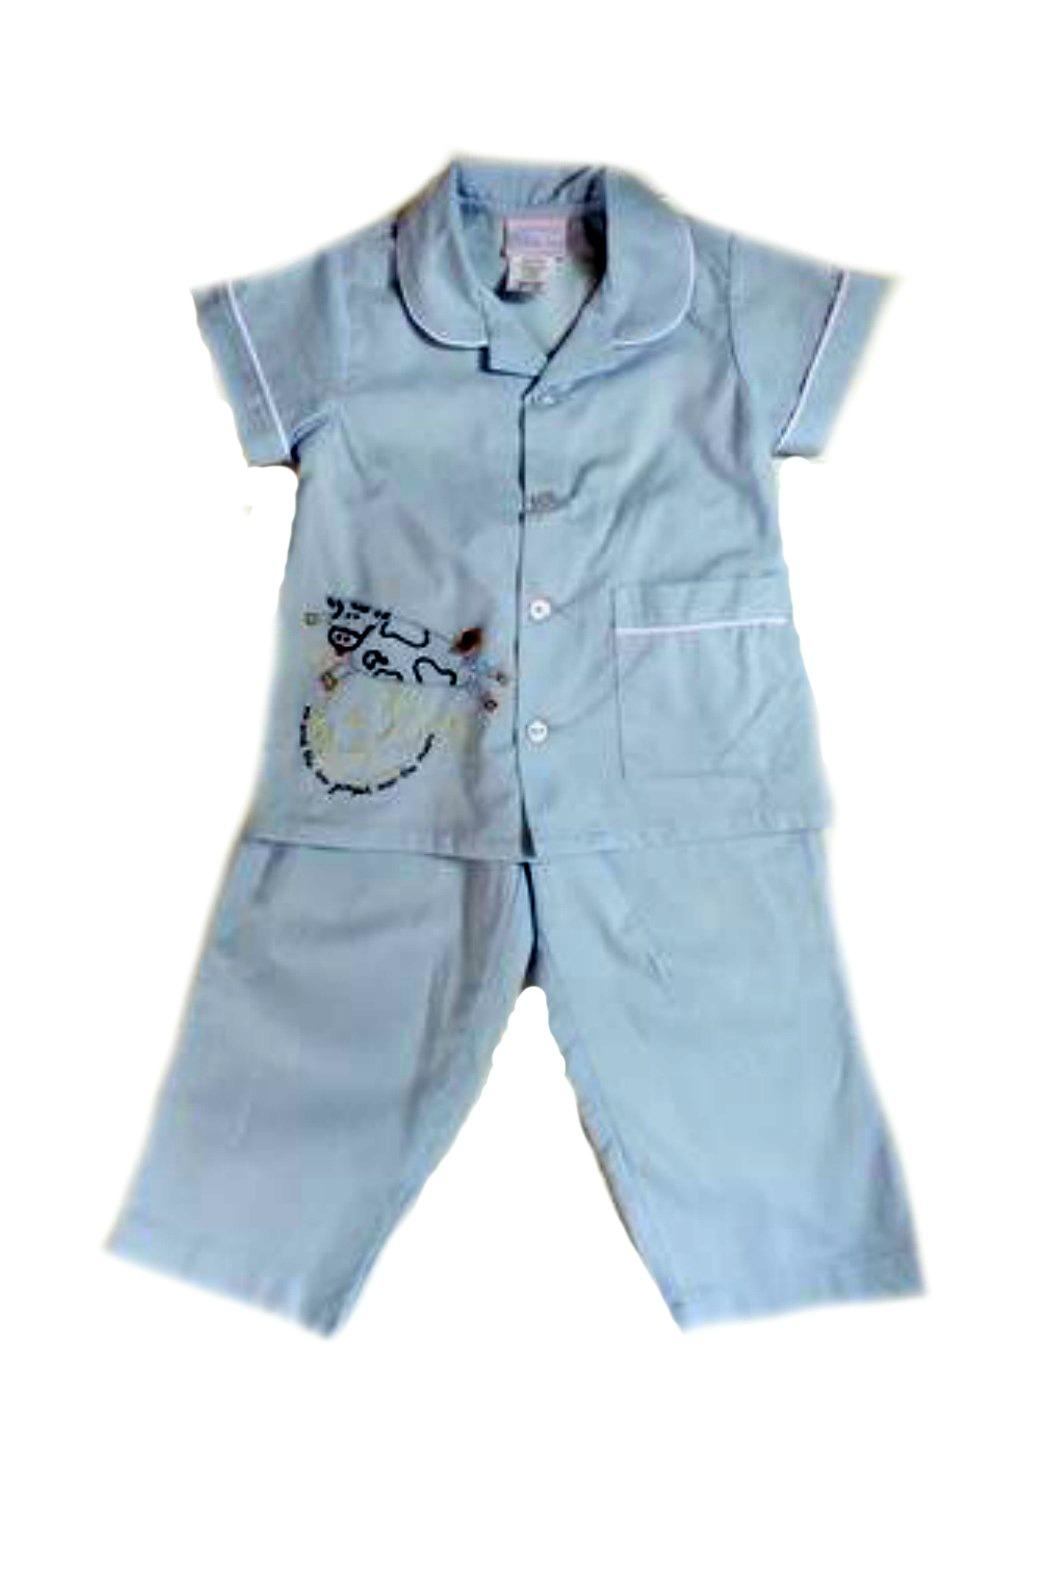 Lullaby Set The-Cow-Jumped-Over-The-Moon Loungewear - Front Full Image